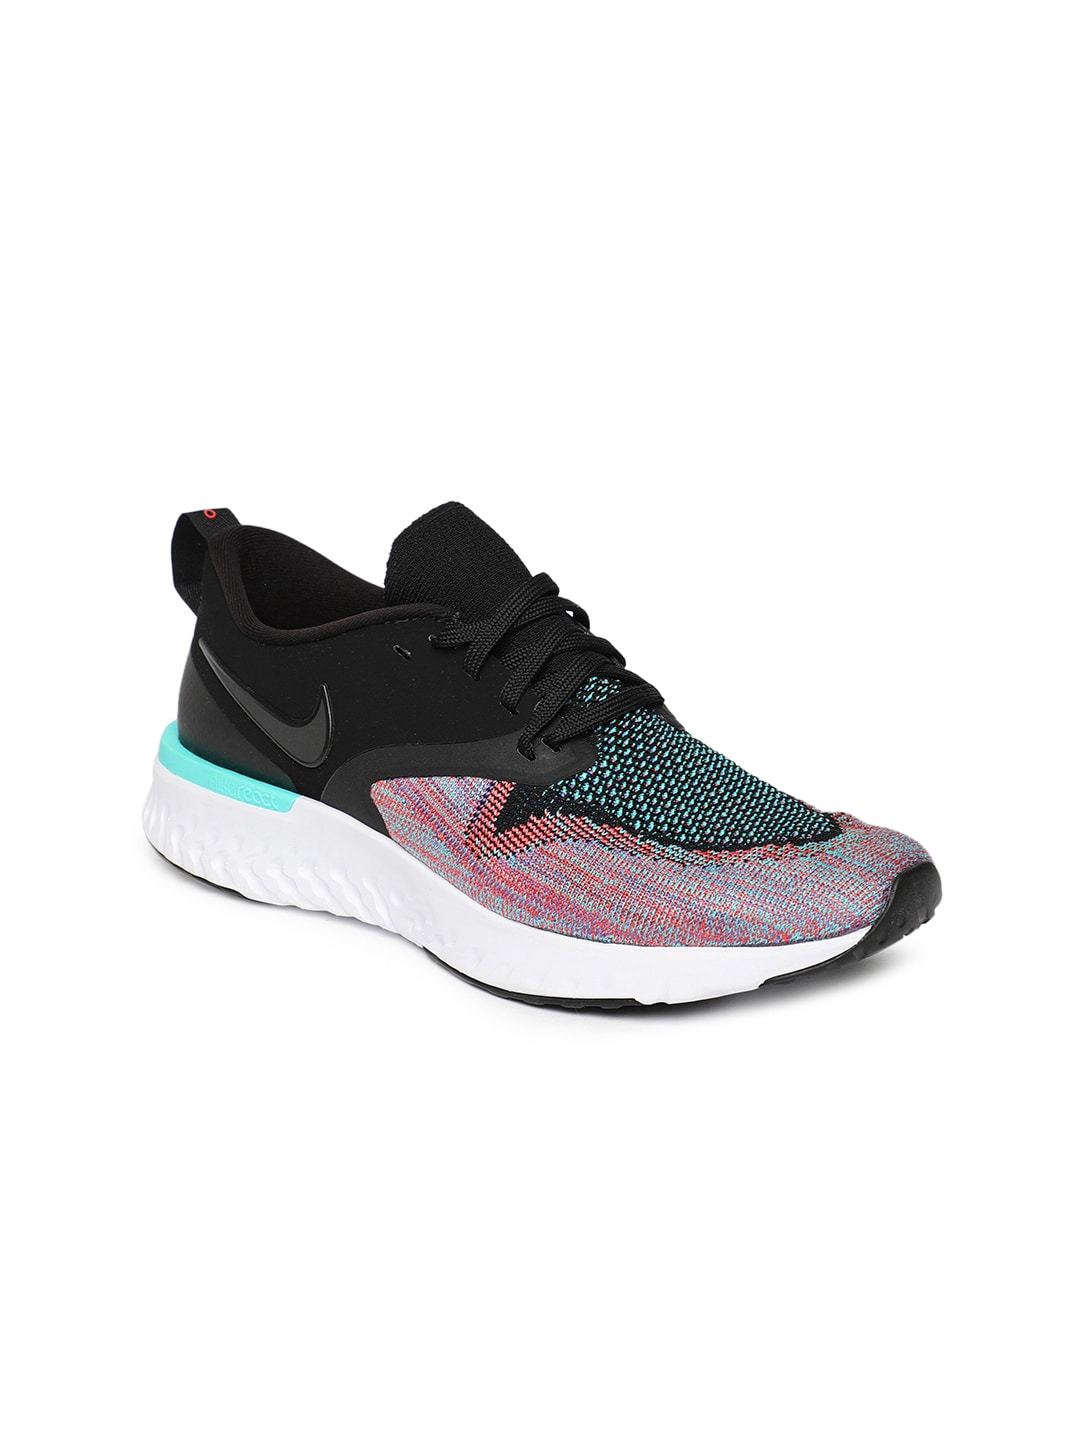 d012bc1581d08 Nike Odyssey React Pink Running Shoes for women - Get stylish shoes ...